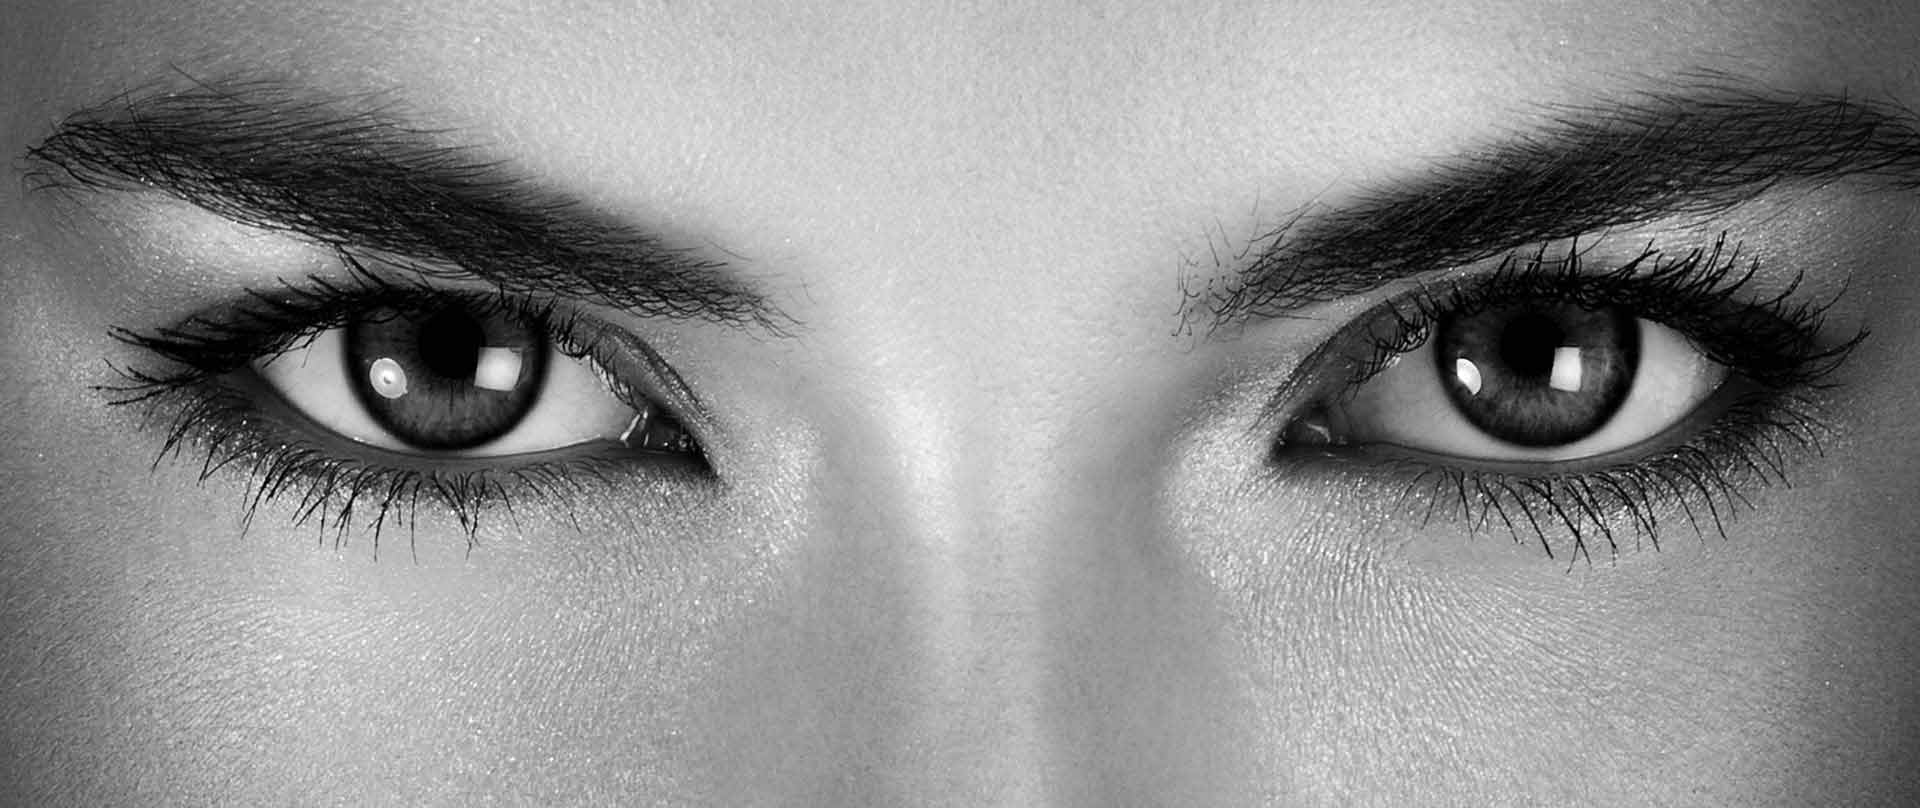 Brow & Forehead Lifts by Dr. Robert Guyette in Scottsdale AZ